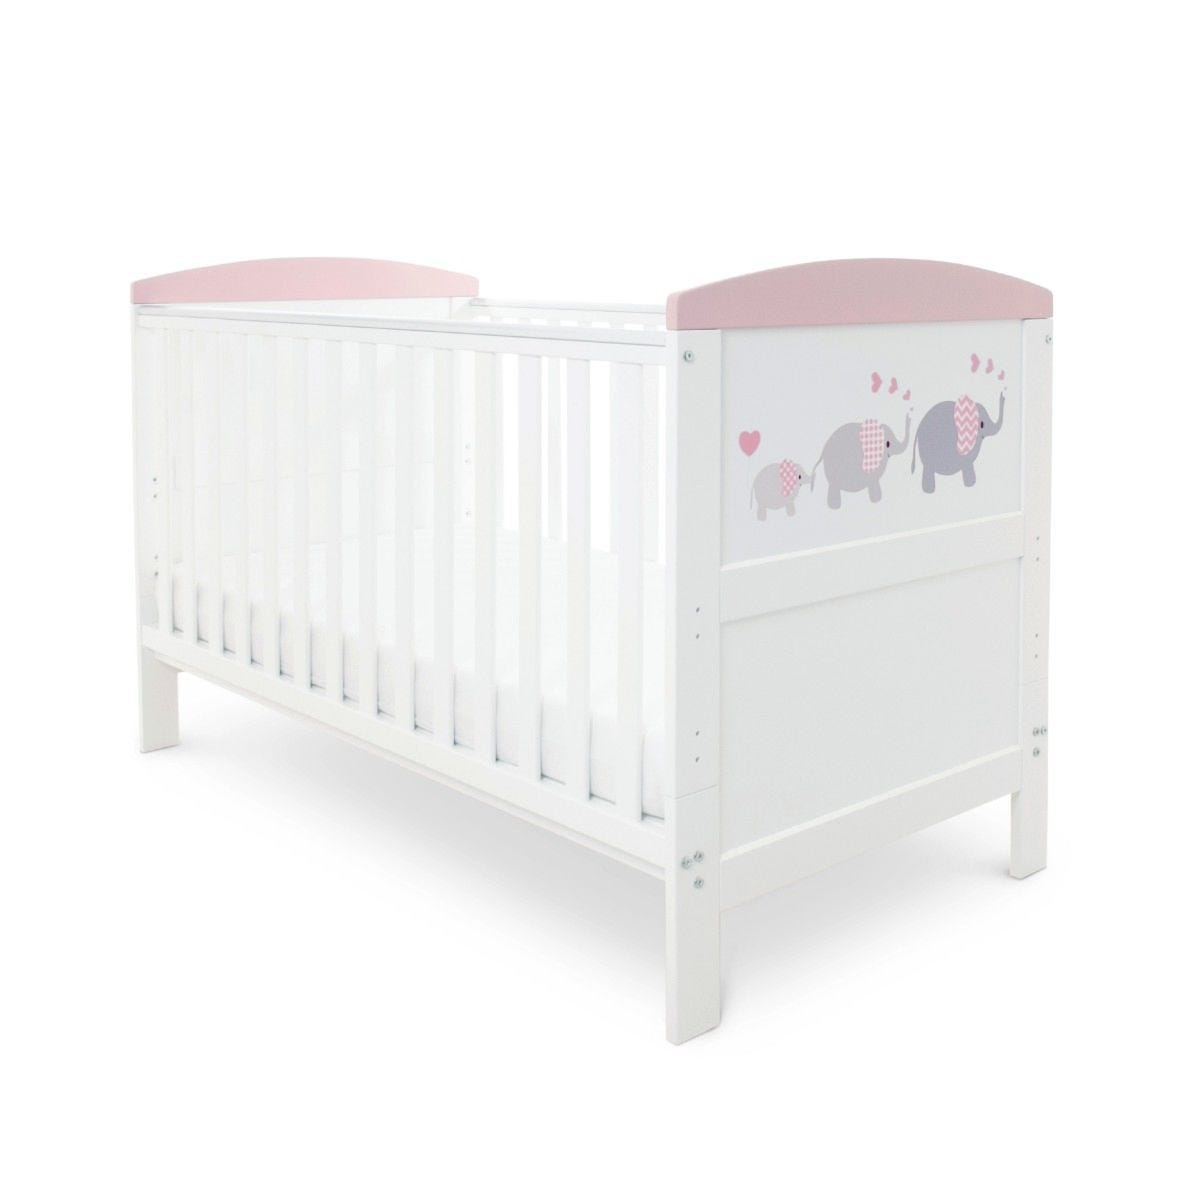 Ickle Bubba Coleby Style Cot Bed and Pocket Sprung Mattress Elephant Love Pink